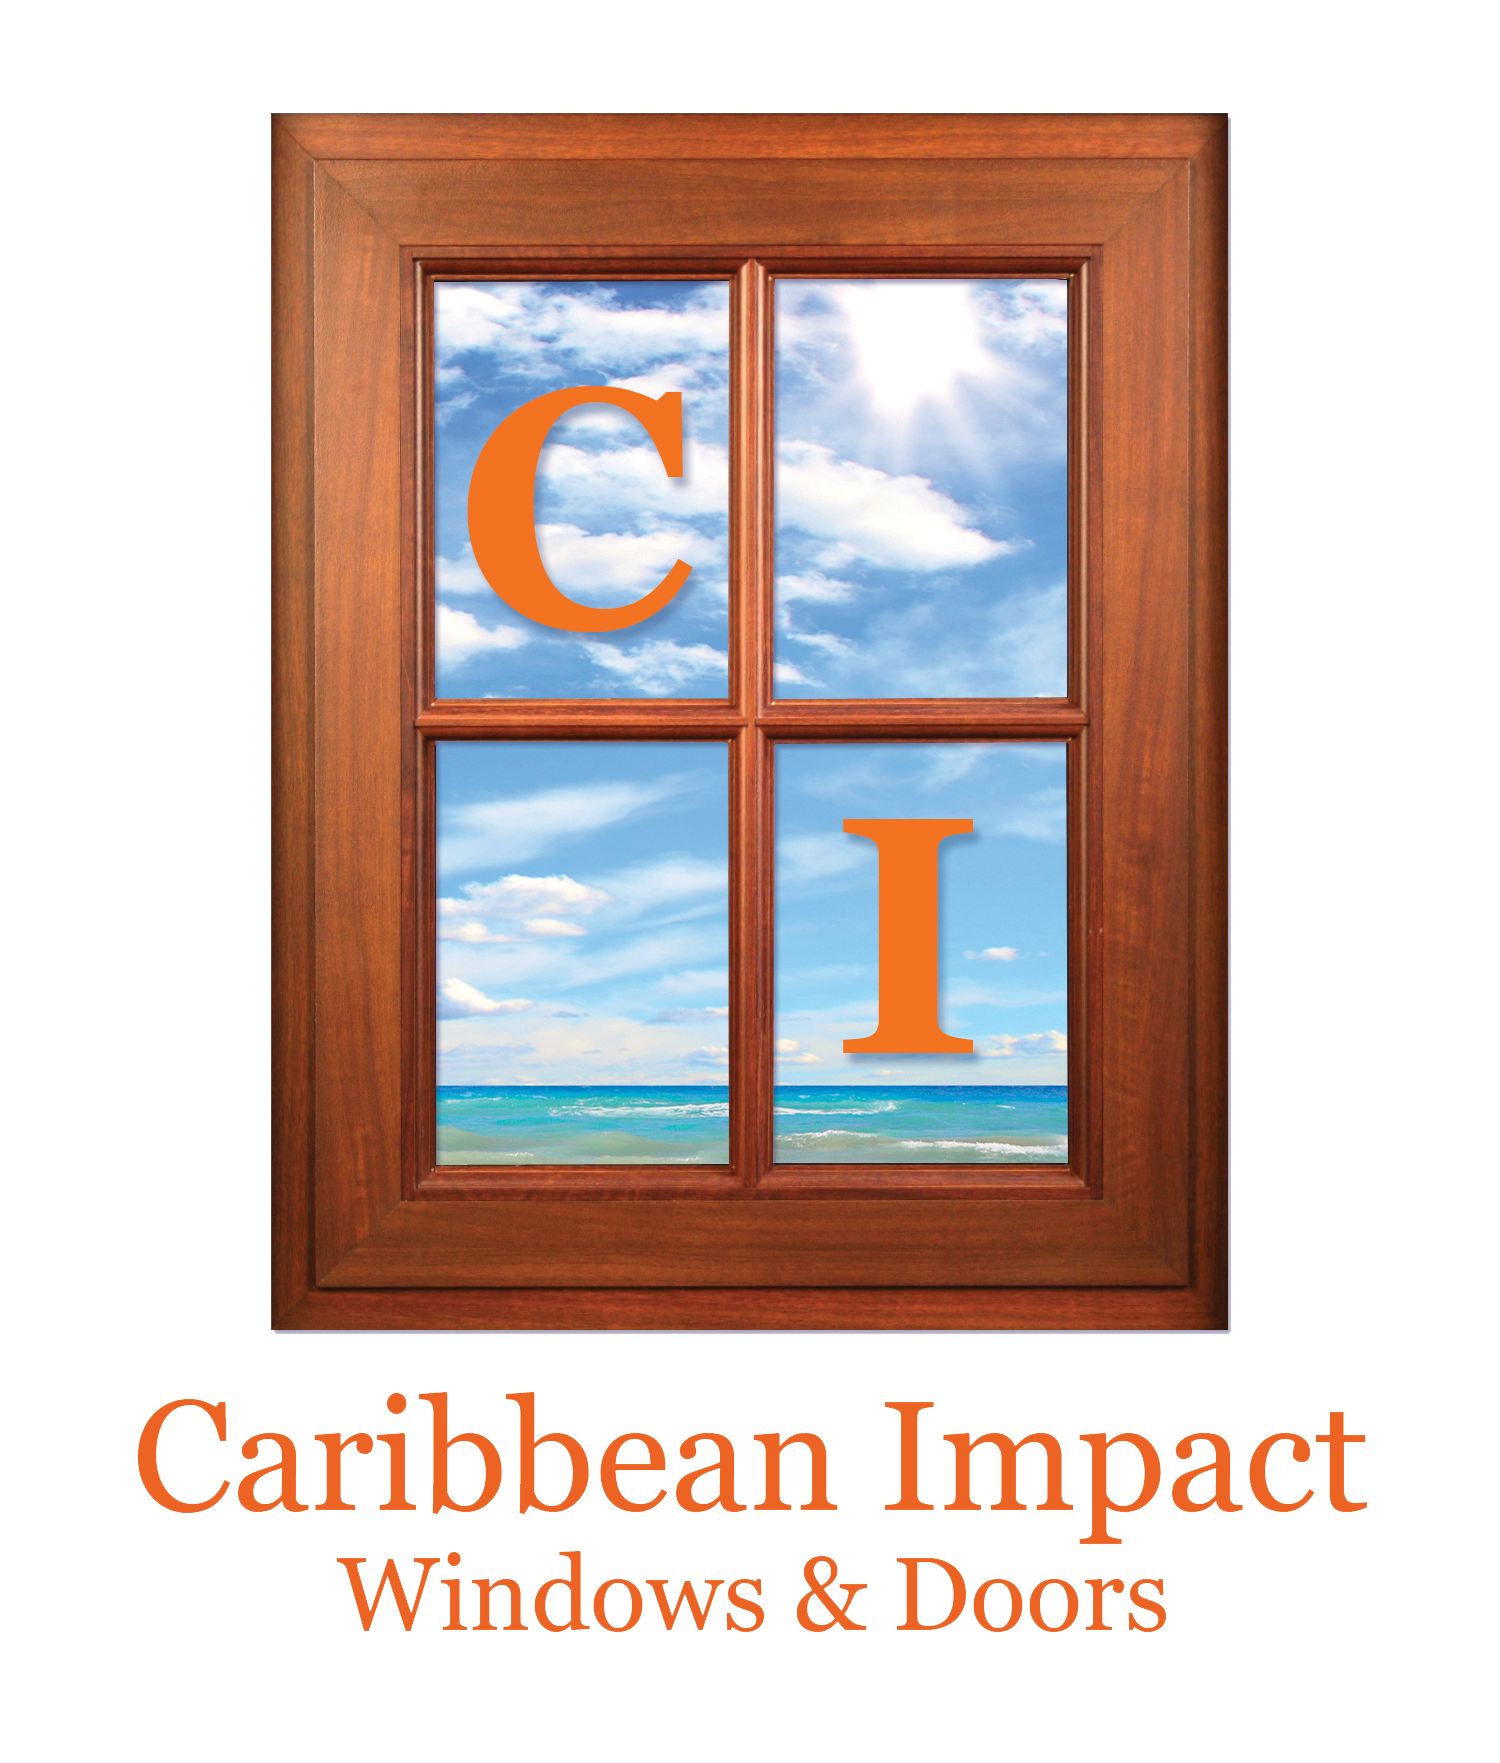 Caribbean Impact Windows & Doors